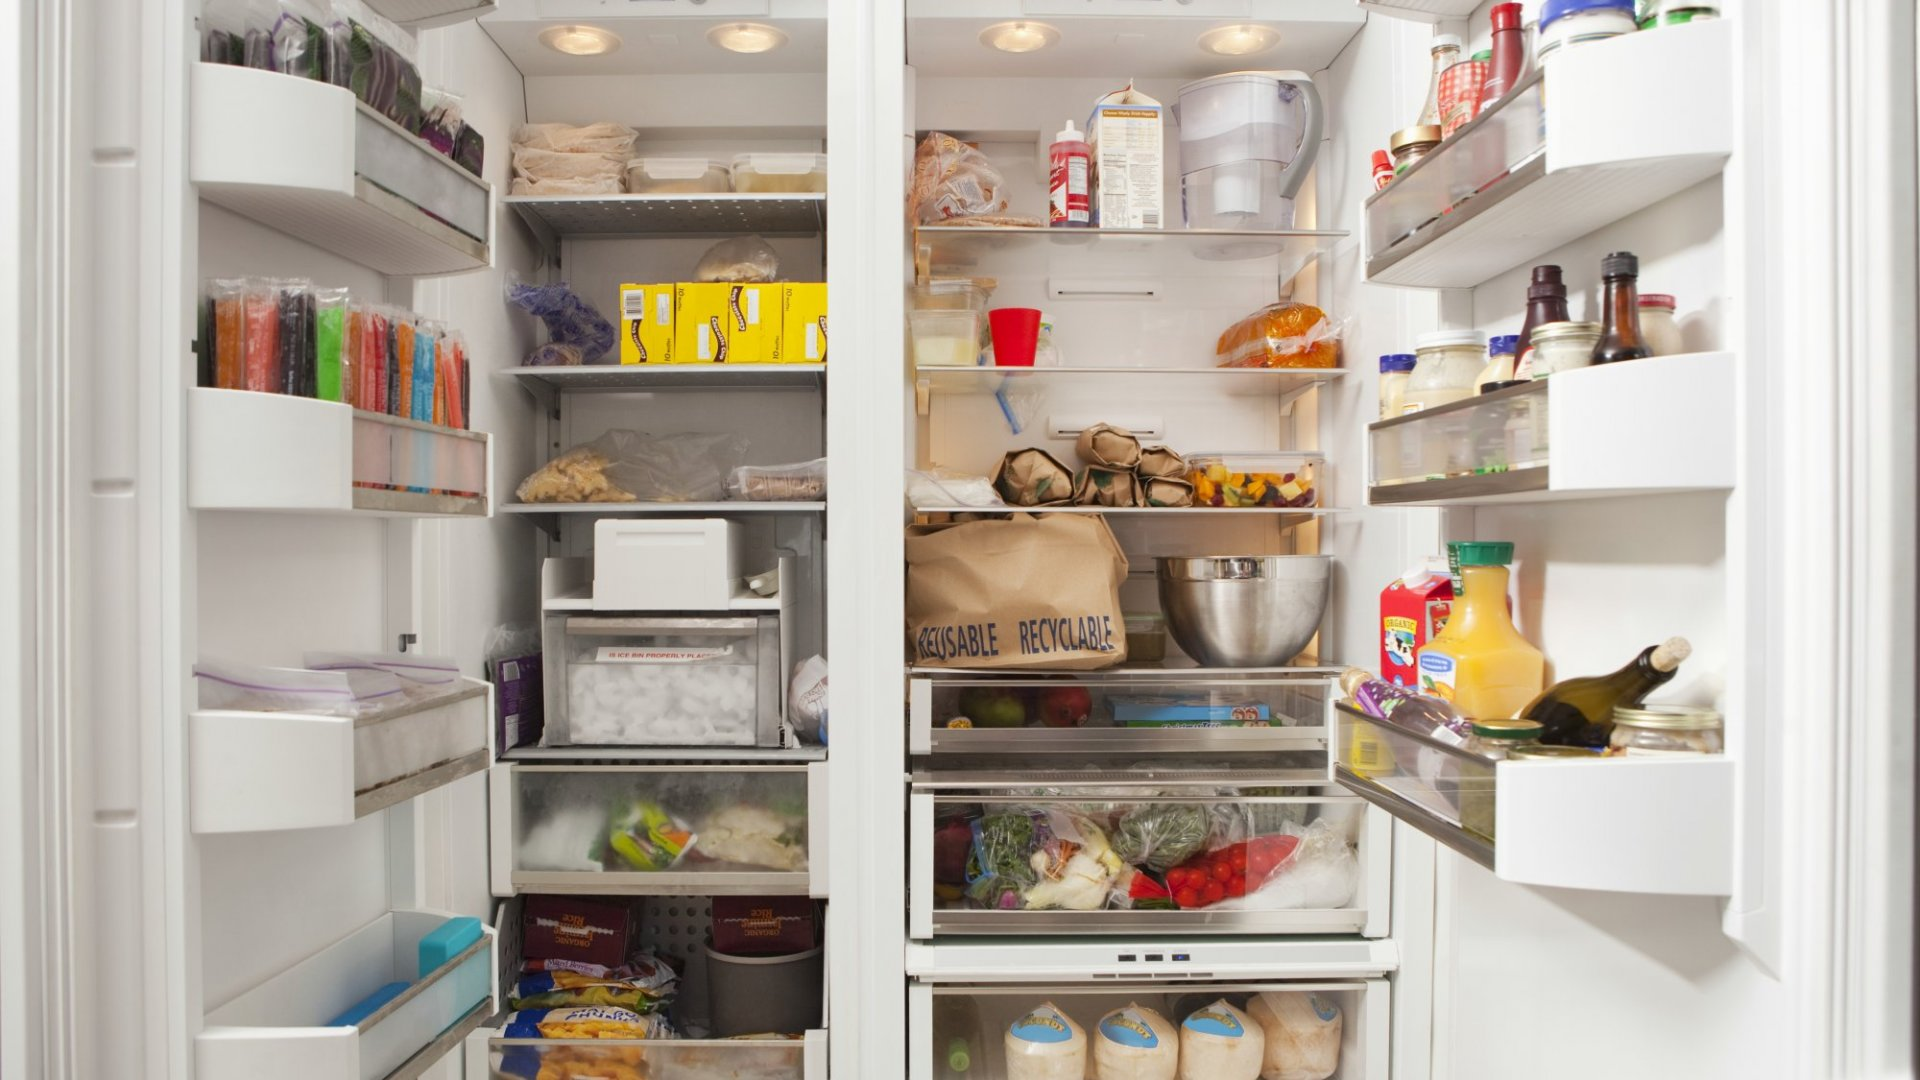 Walmart Wants to Deliver Groceries Straight to Your Fridge (Even If You're Not Home)